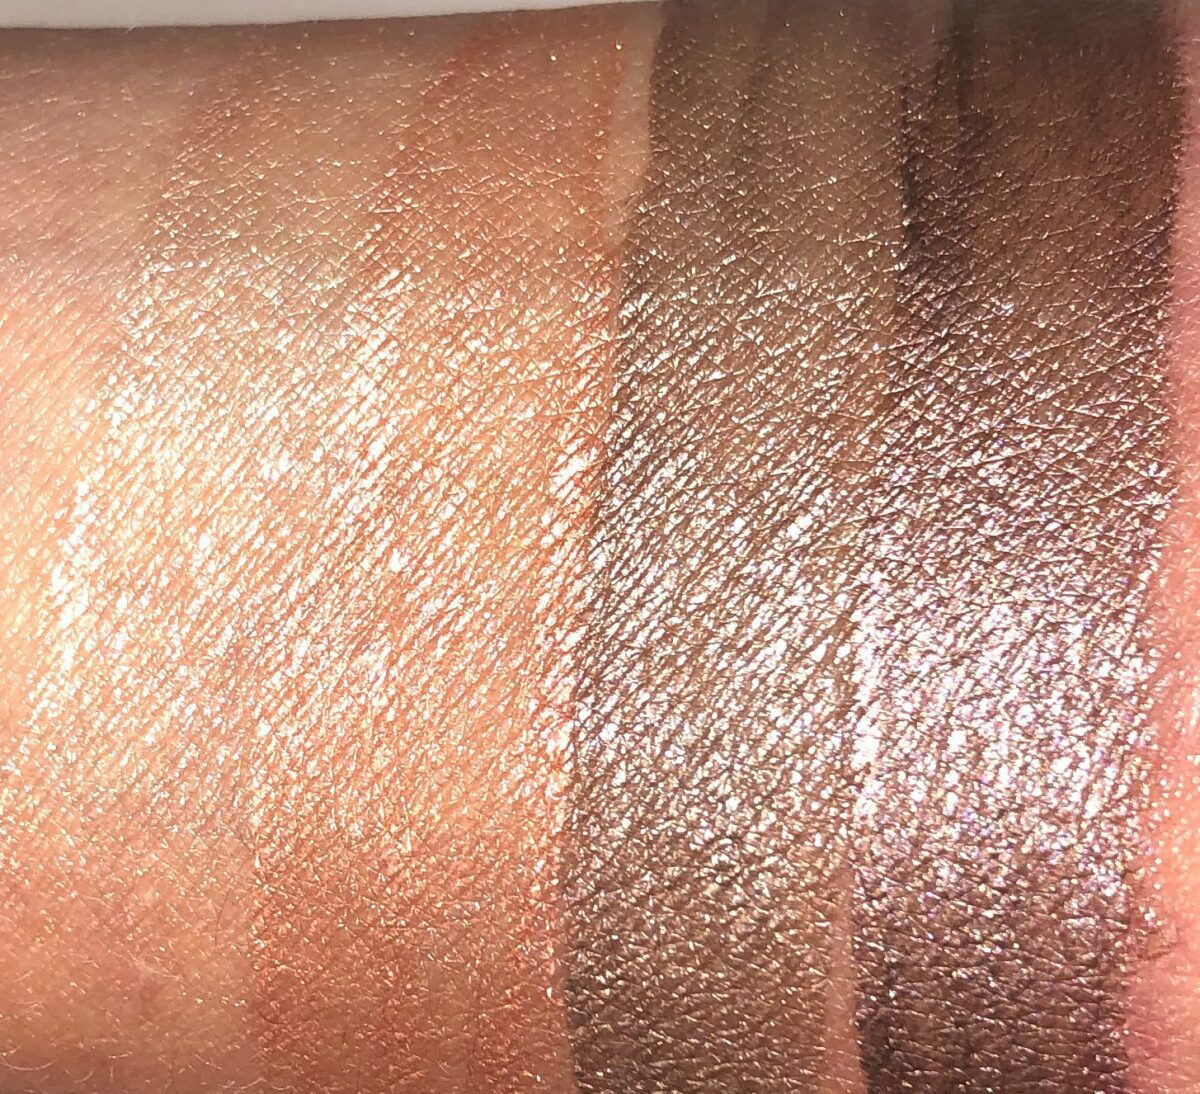 SWATCHES L TO R - RAYON, RISING SUN, DESERT WIND, AND VASTNESS